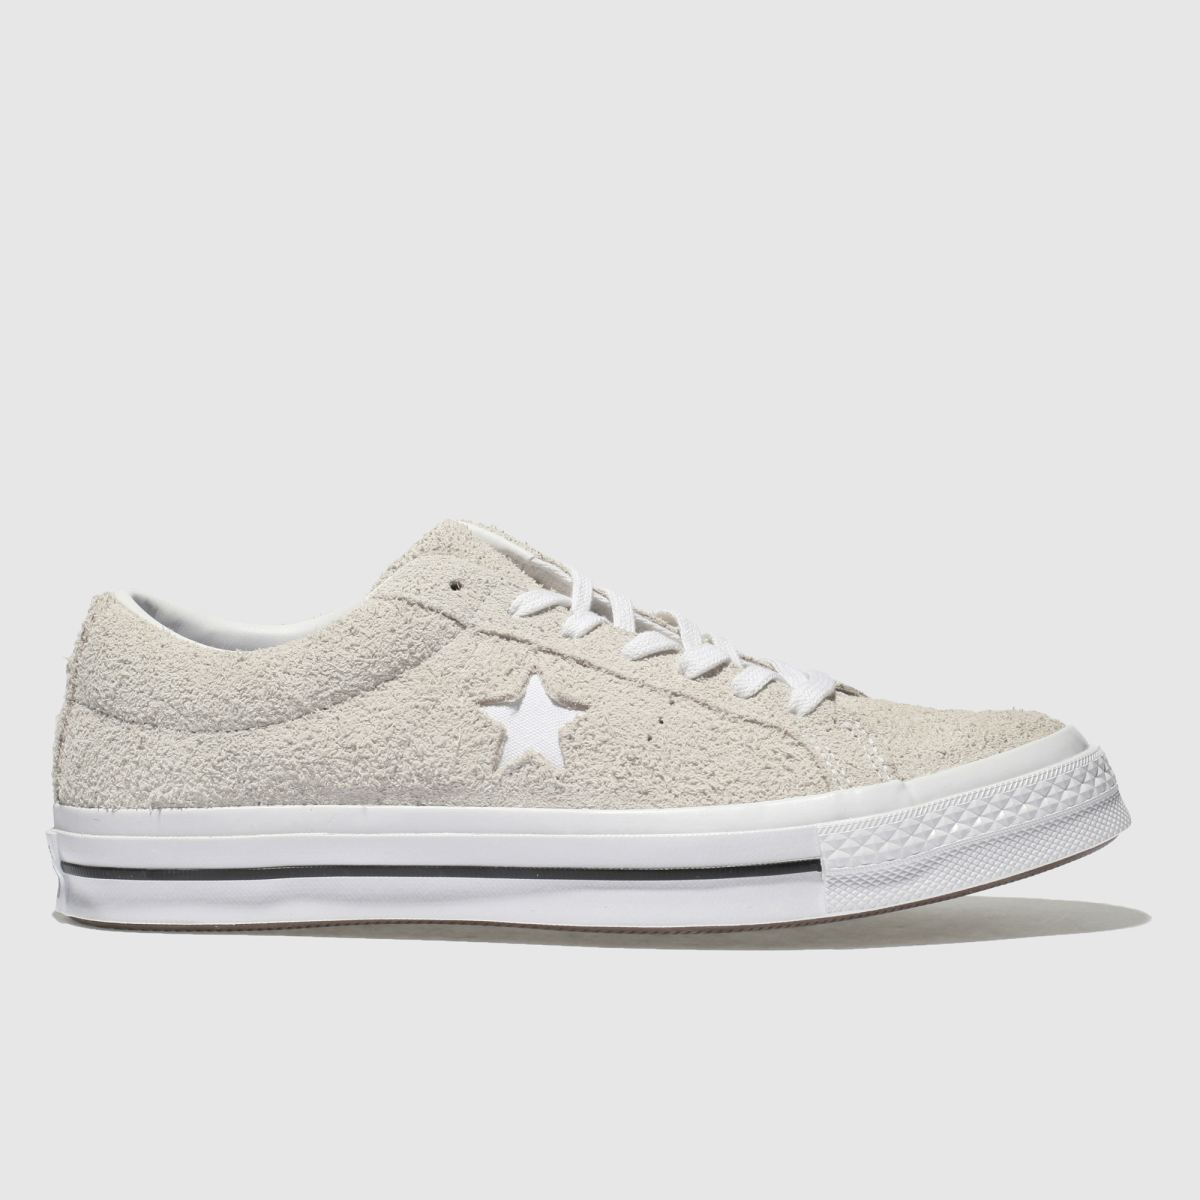 Converse White One Star Ox Vintage Suede Trainers